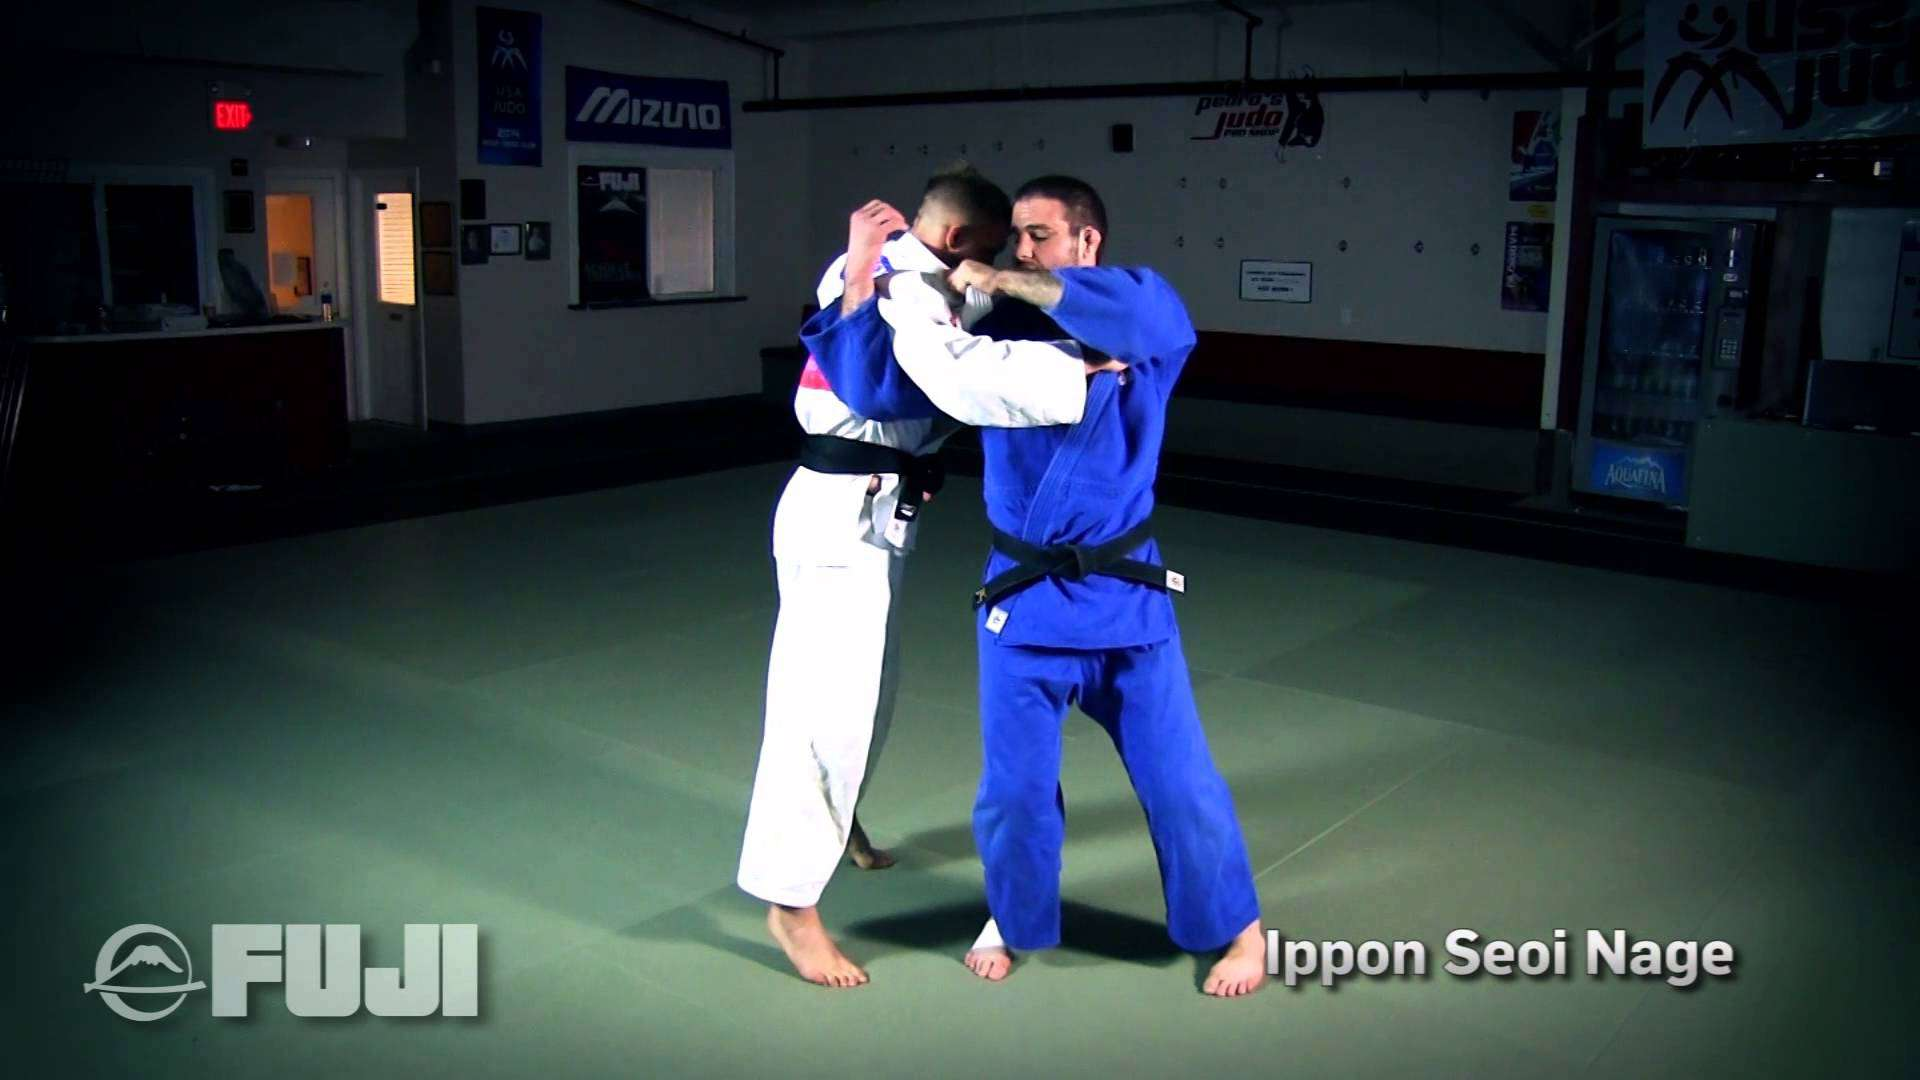 How to do Ippon Seoi Nage